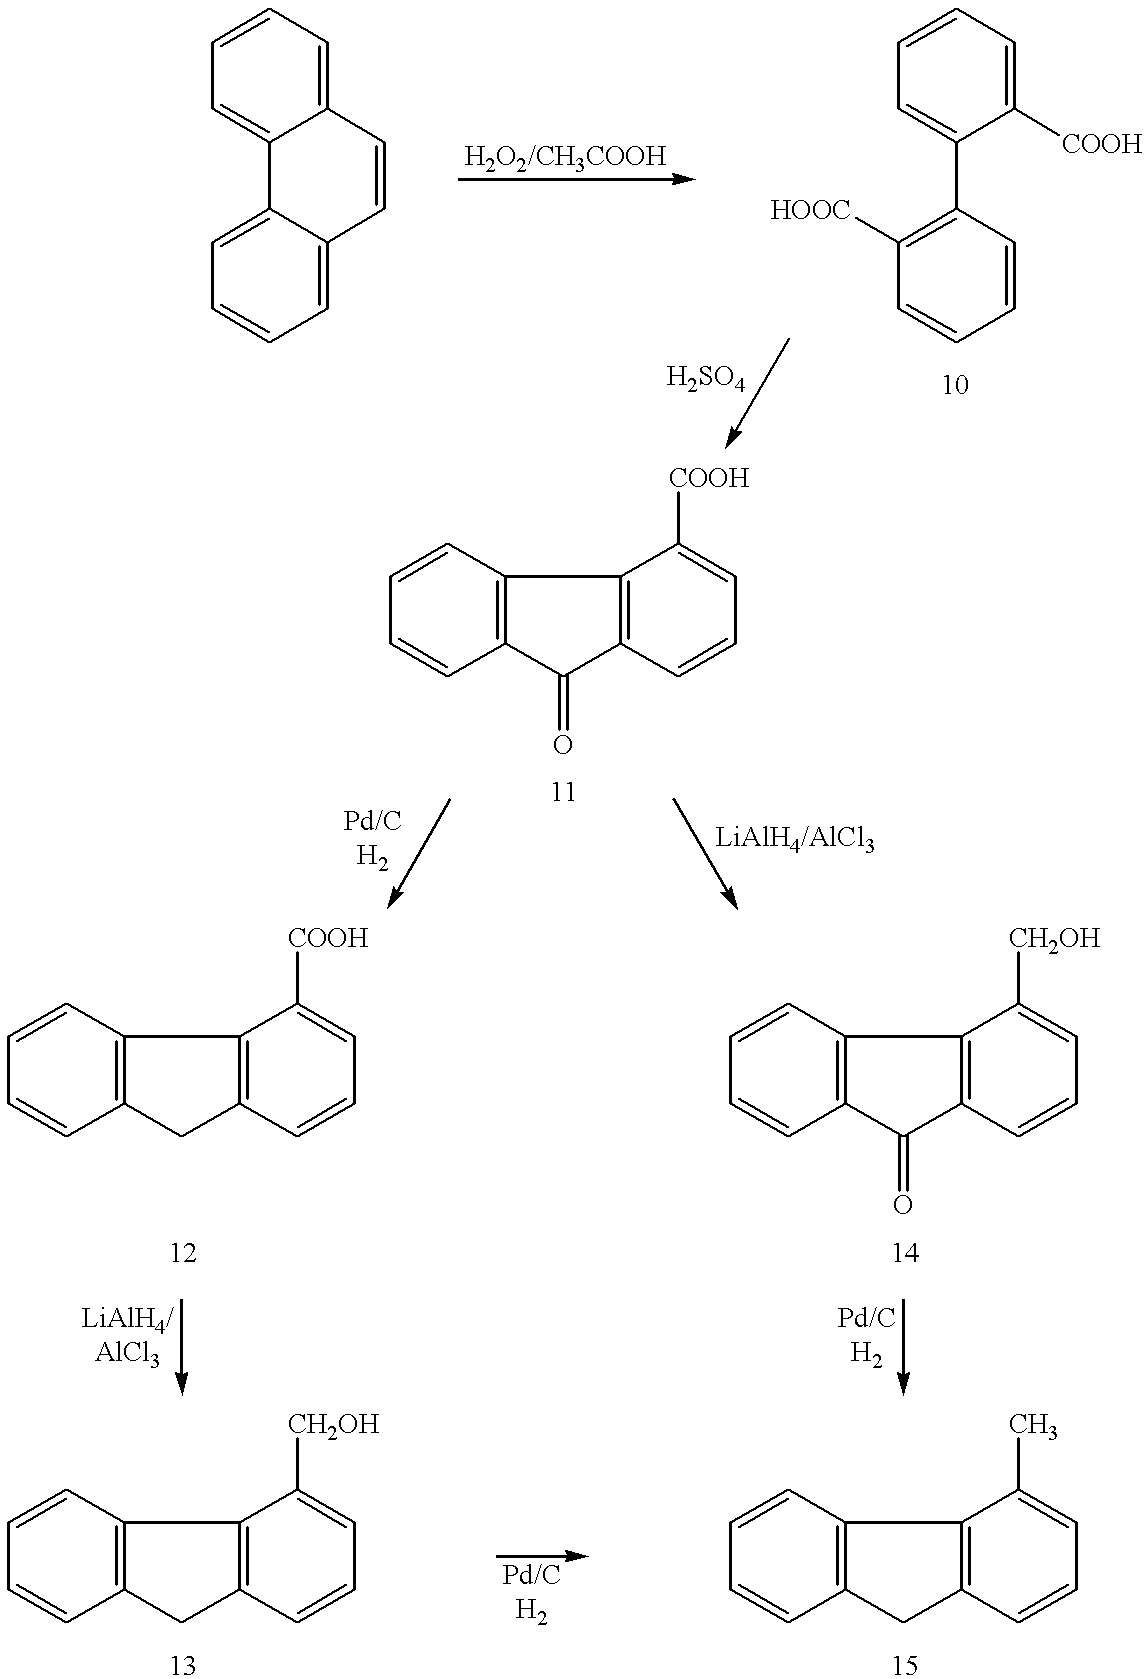 fluorenene to fluoronone The initial attack on both fluorene and 9-fluorenone was catalyzed by dbfa to yield 9-fluorenol and 1,1a-dihydroxy-1-hydro-9-fluorenone, respectively.